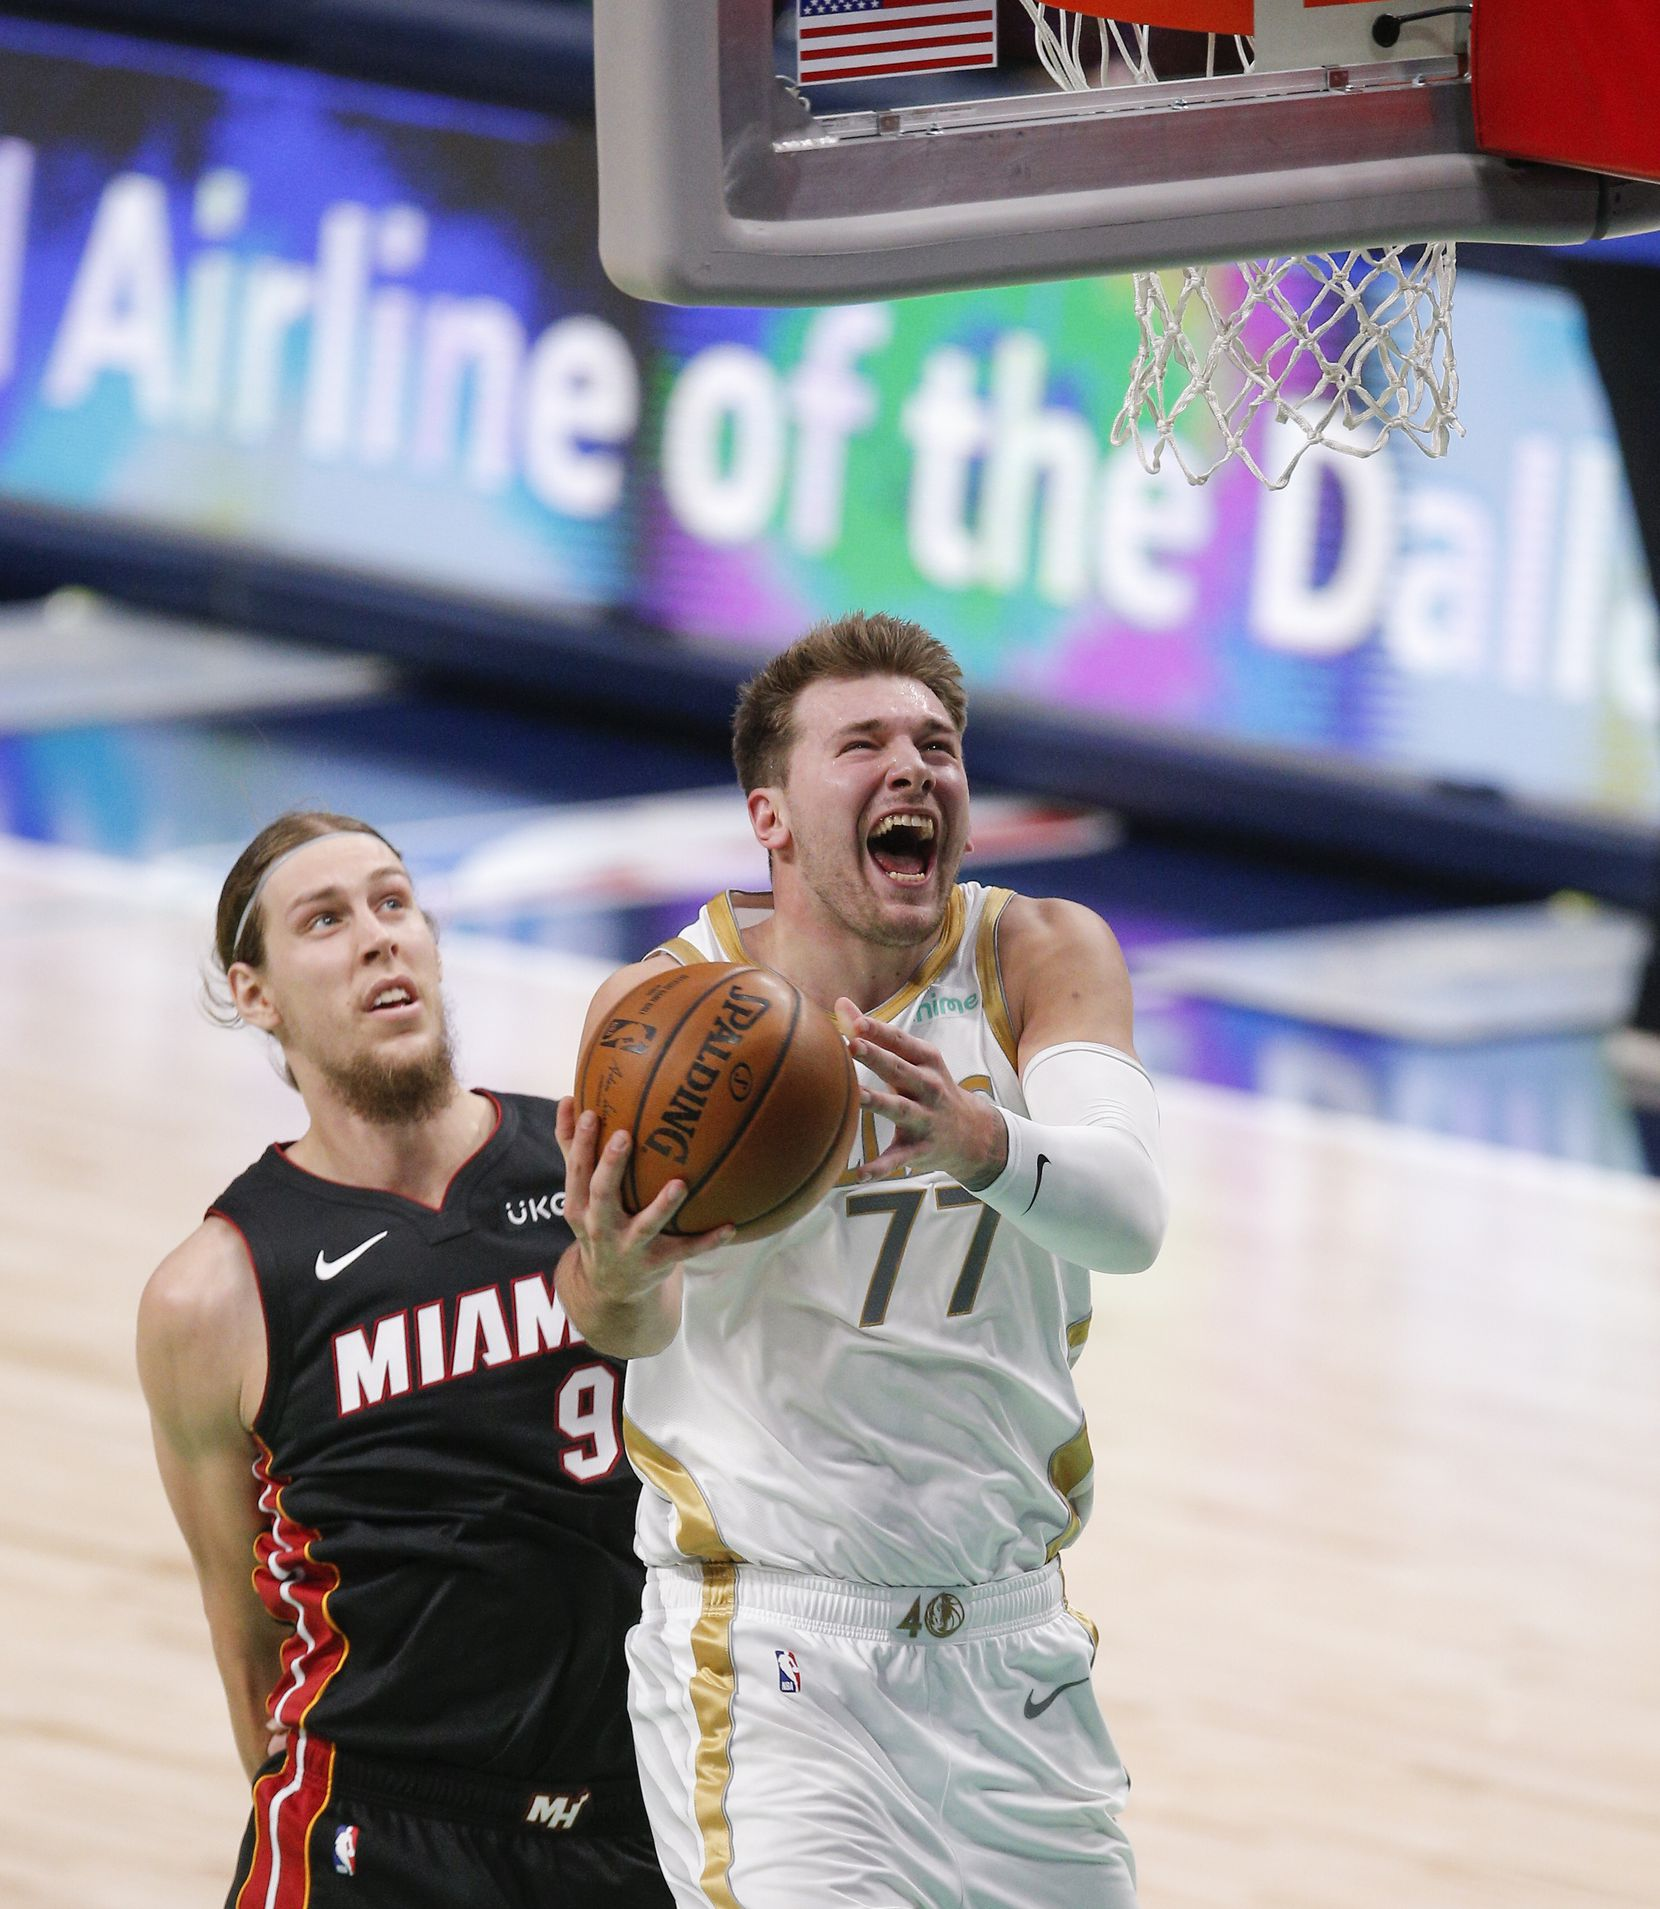 Dallas Mavericks guard Luka Doncic (77) attempts a shot as Miami Heat forward Kelly Olynyk (9) defends during the first half of an NBA basketball game, Friday, January 1, 2021. (Brandon Wade/Special Contributor)